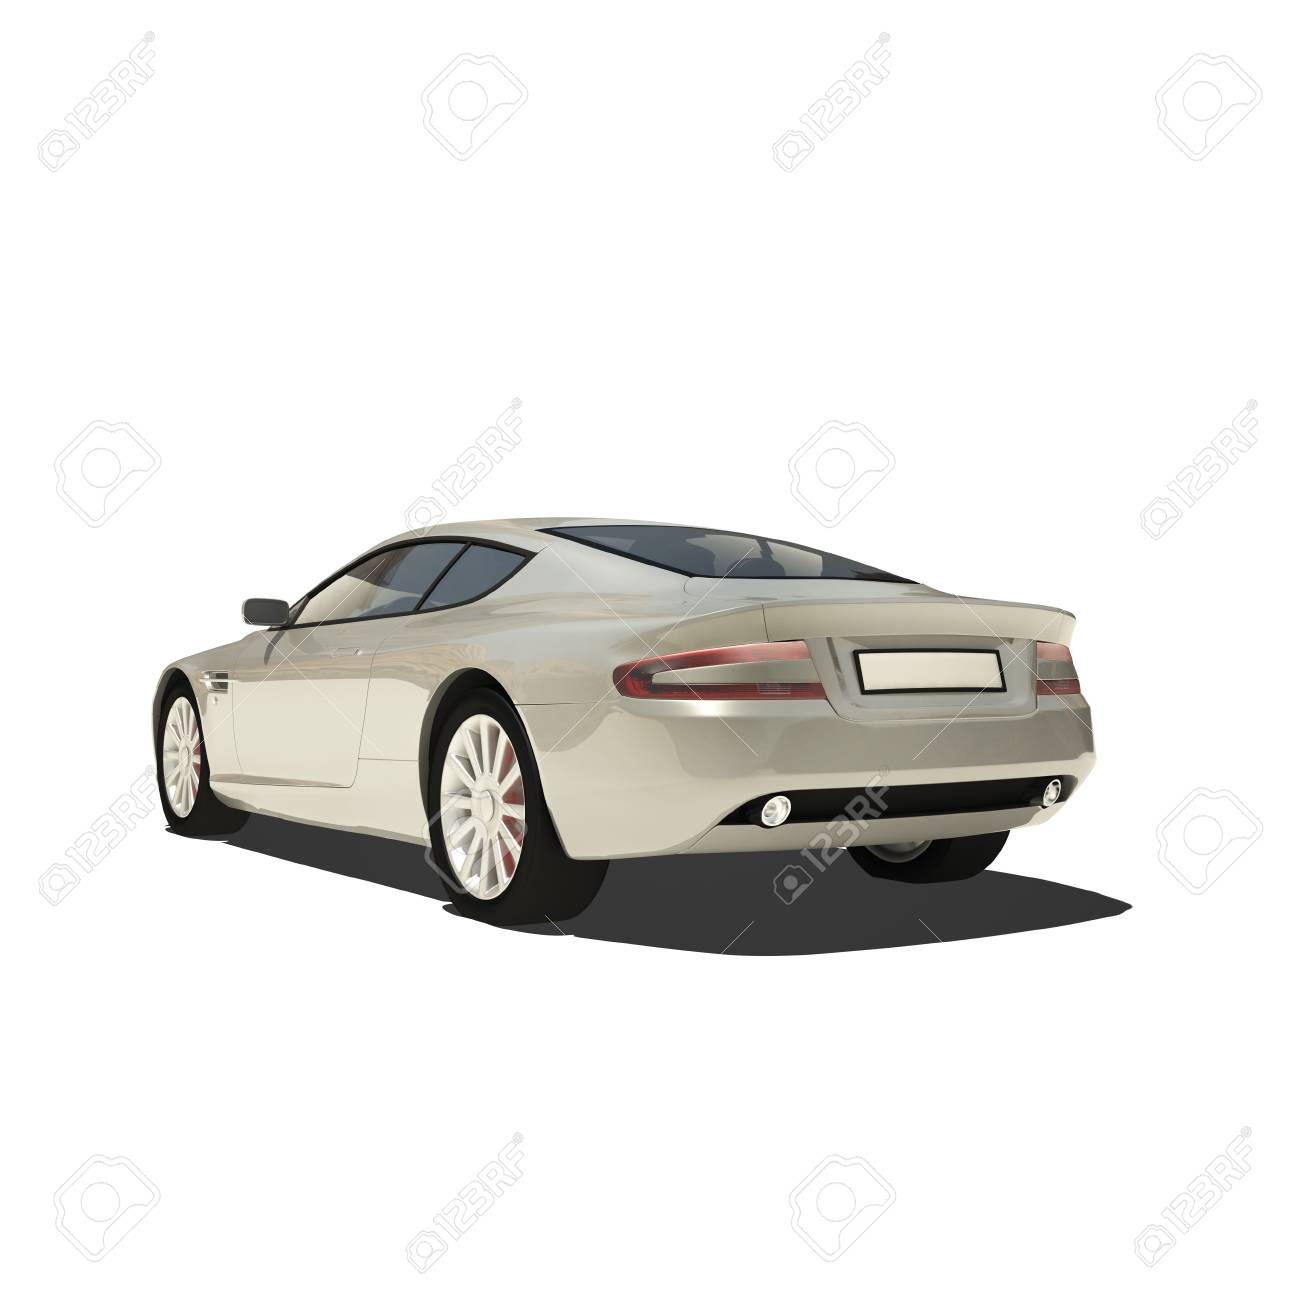 Silver Super Car Isolated on White. Ready to use illustration. Stock Photo - 22686122